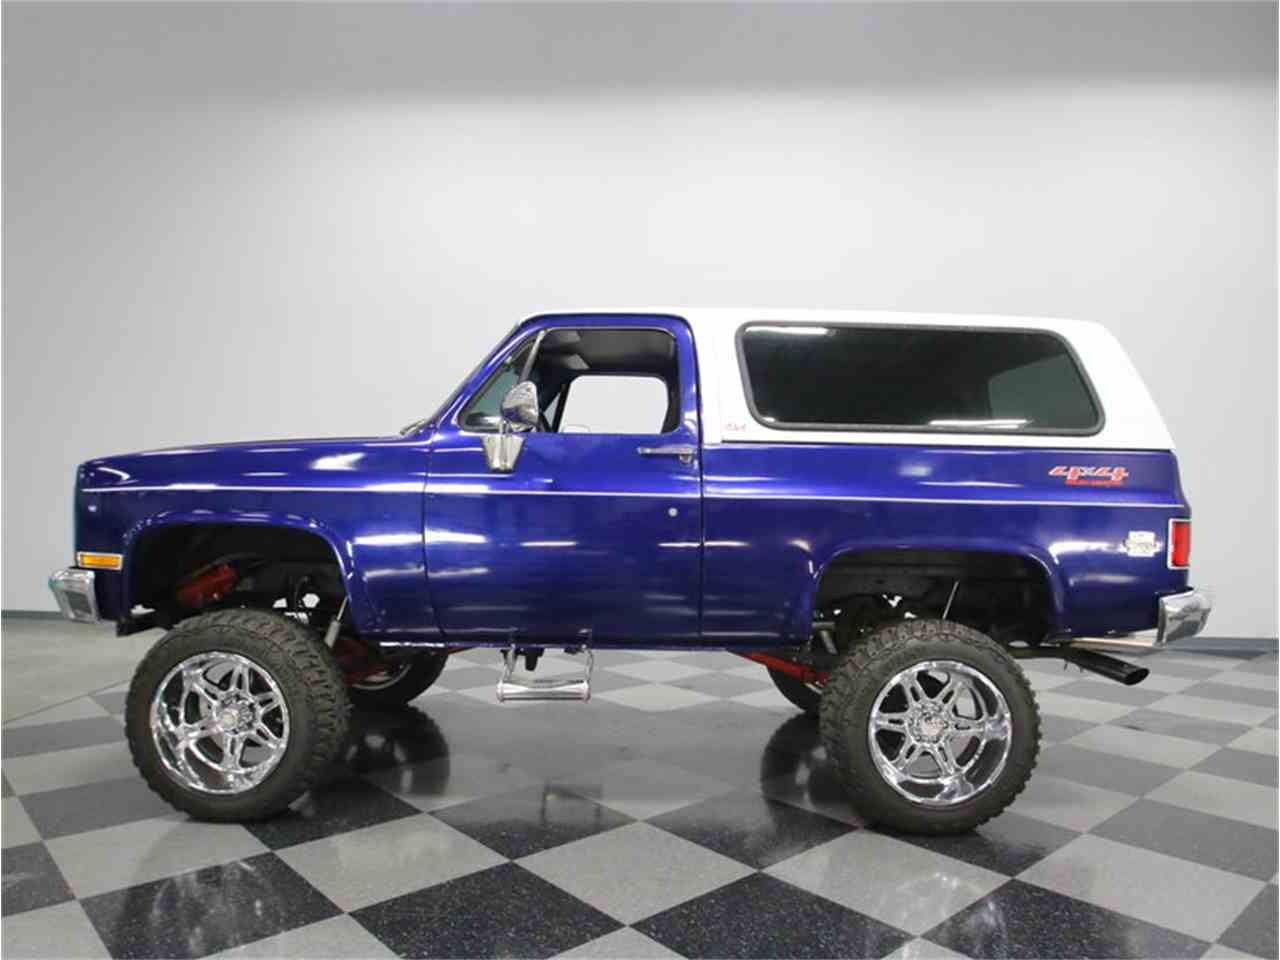 Large Picture of '86 Chevrolet Blazer located in Tennessee - $15,995.00 Offered by Streetside Classics - Nashville - MZFQ